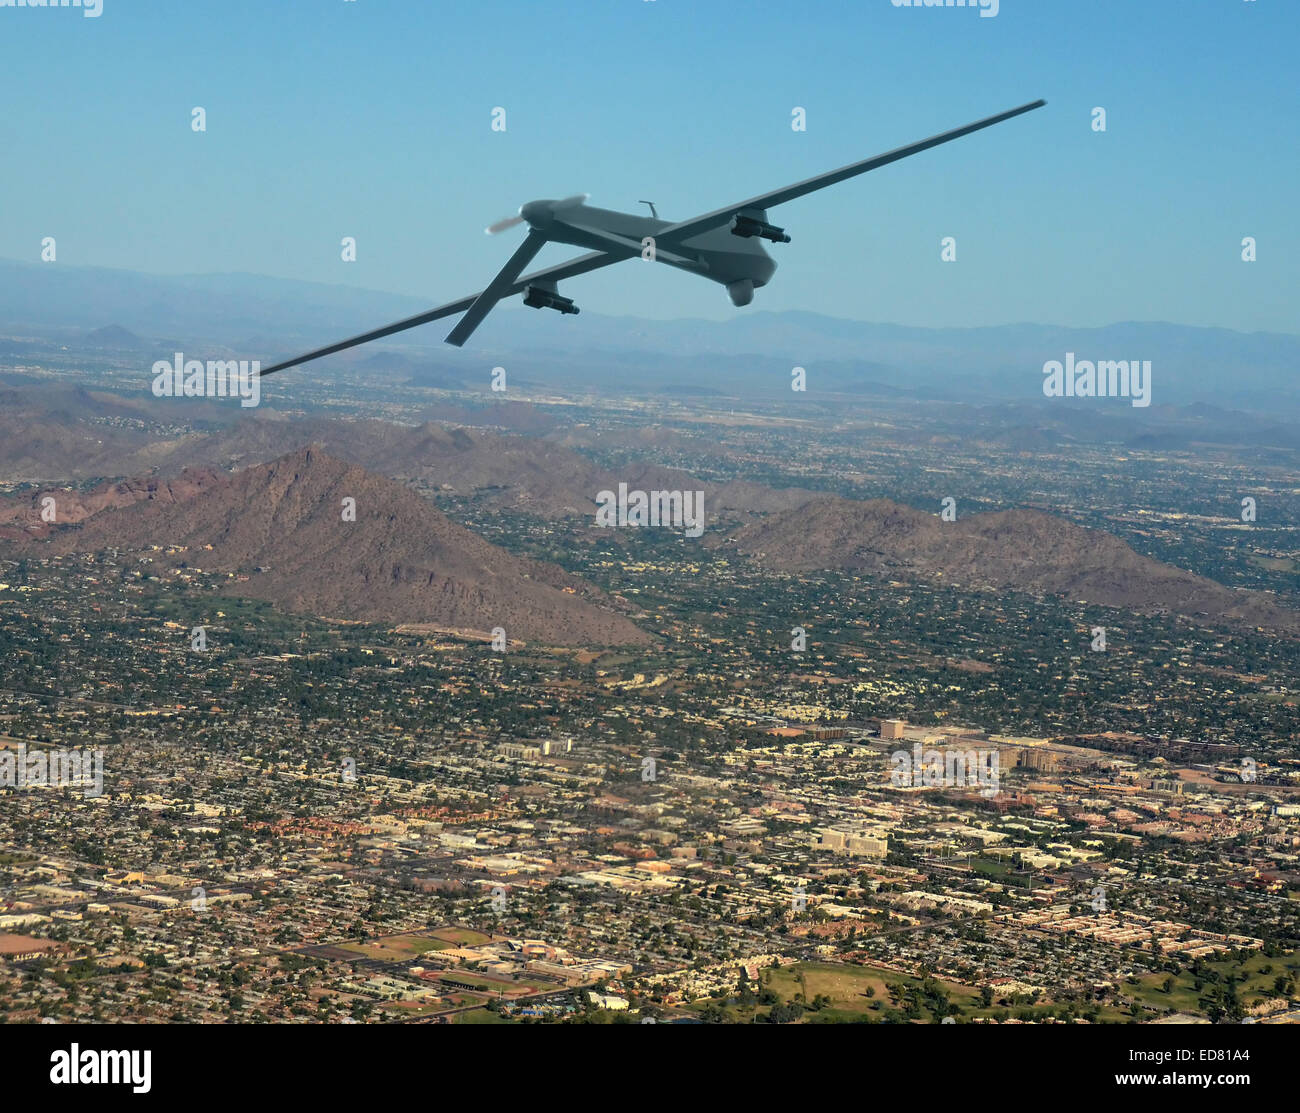 Unmanned military drone on patrol air to air - Stock Image